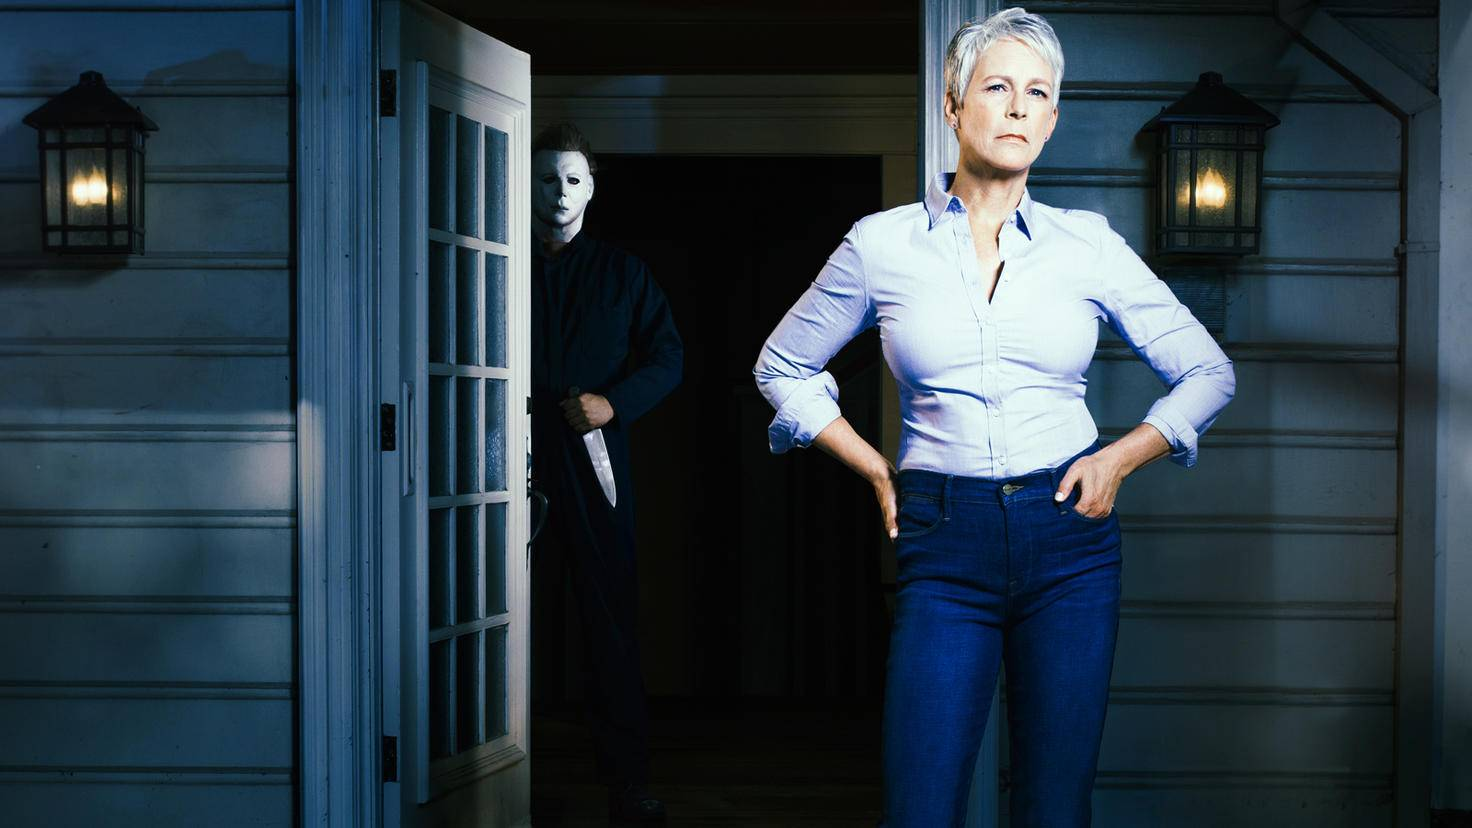 Halloween-Sequel-Jamie Lee Curtis-Universal Pictures-AA68_AE_D001_0002R_CROP